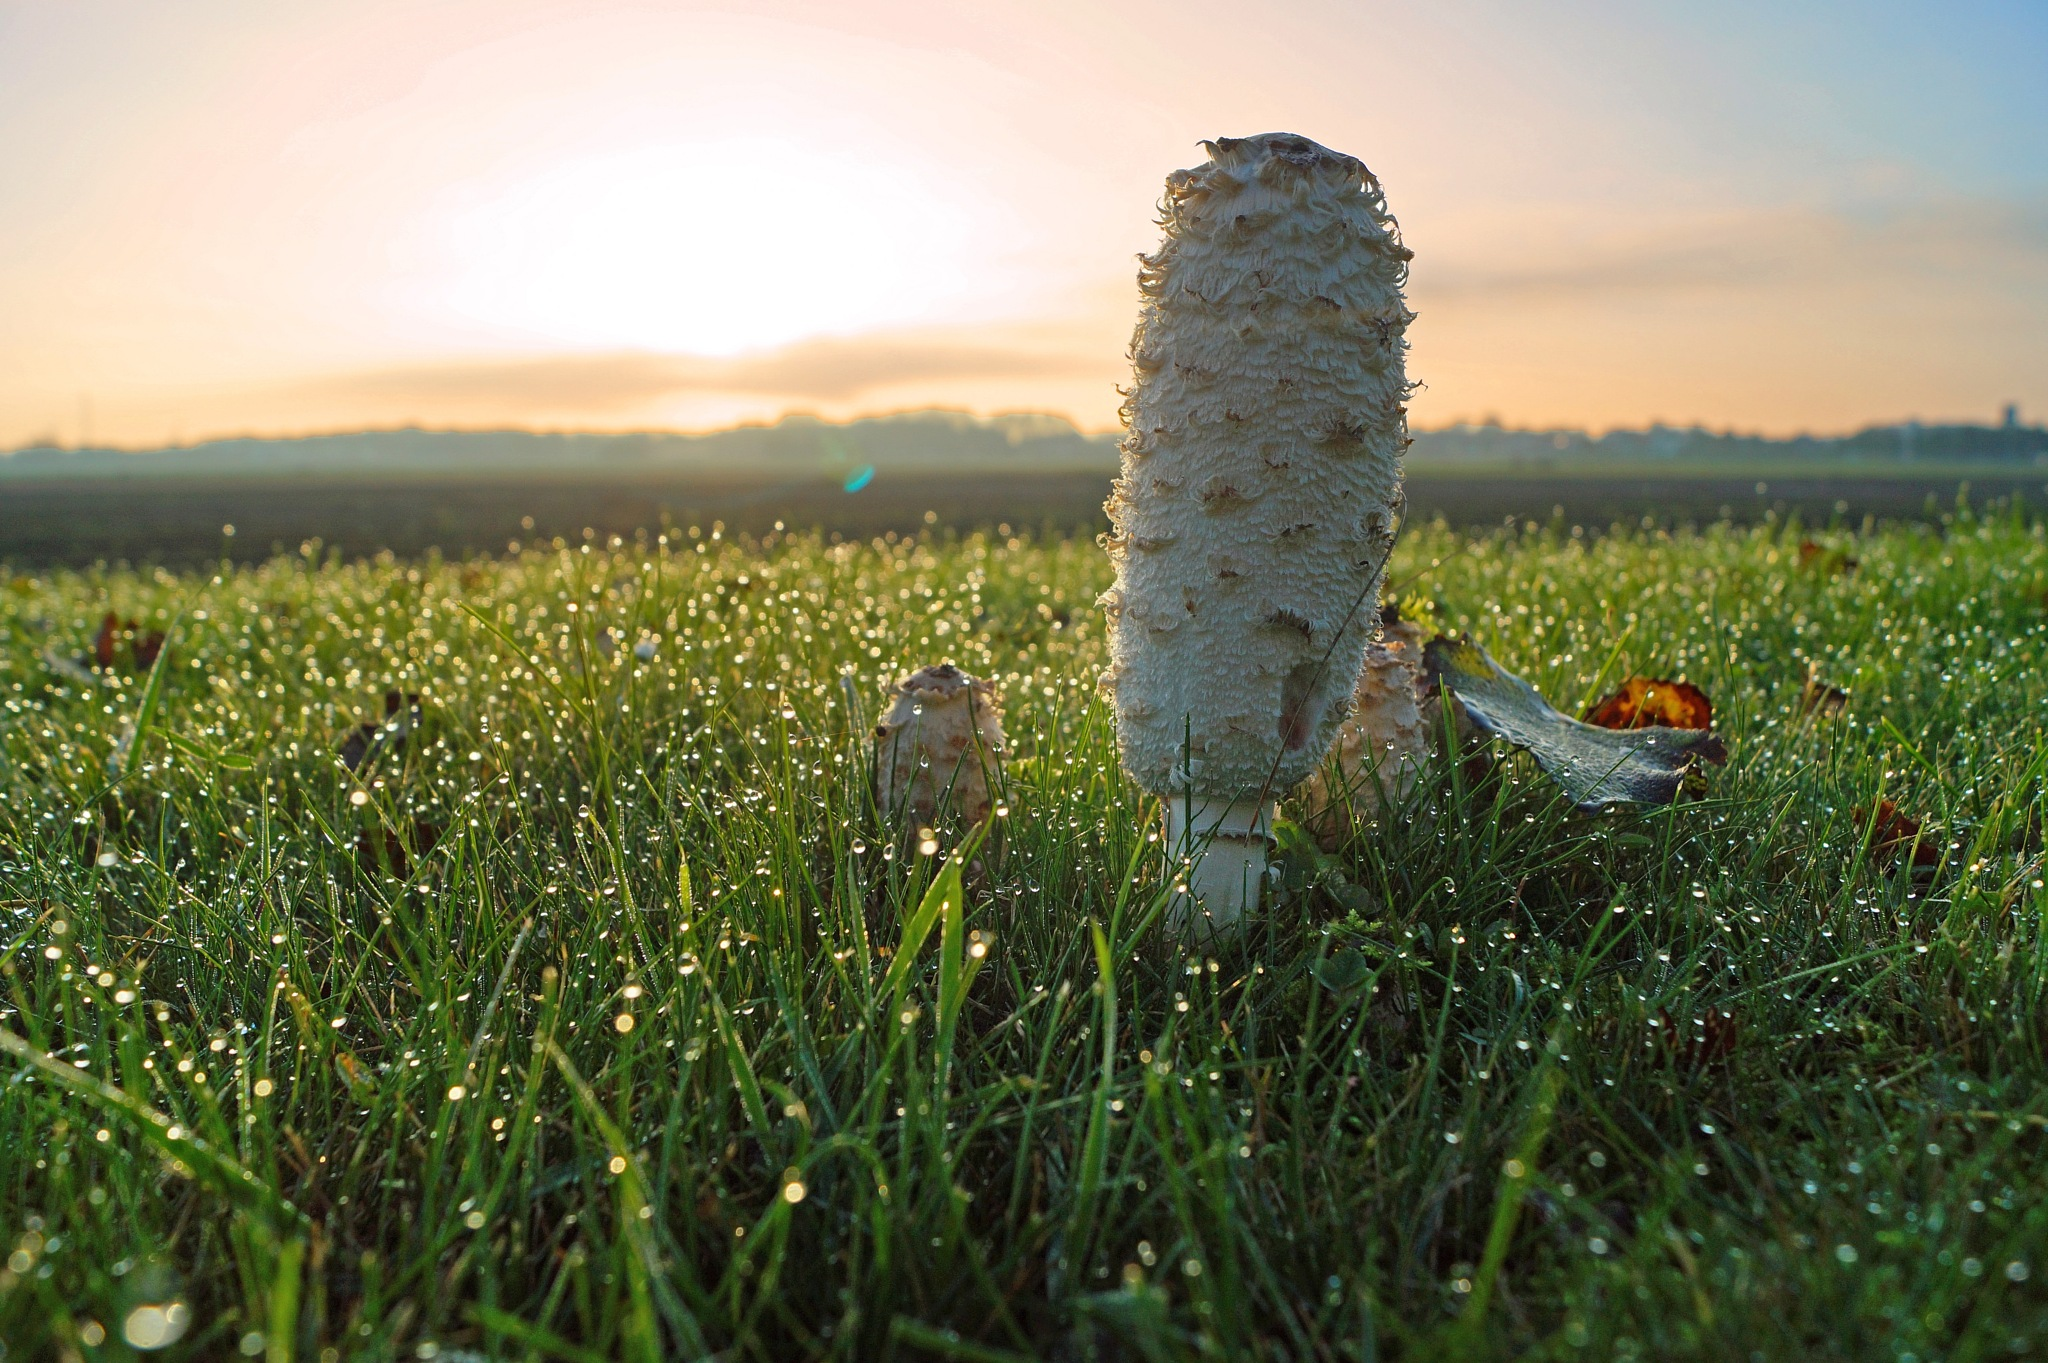 Coprinus at Sunrise by Marian Baay